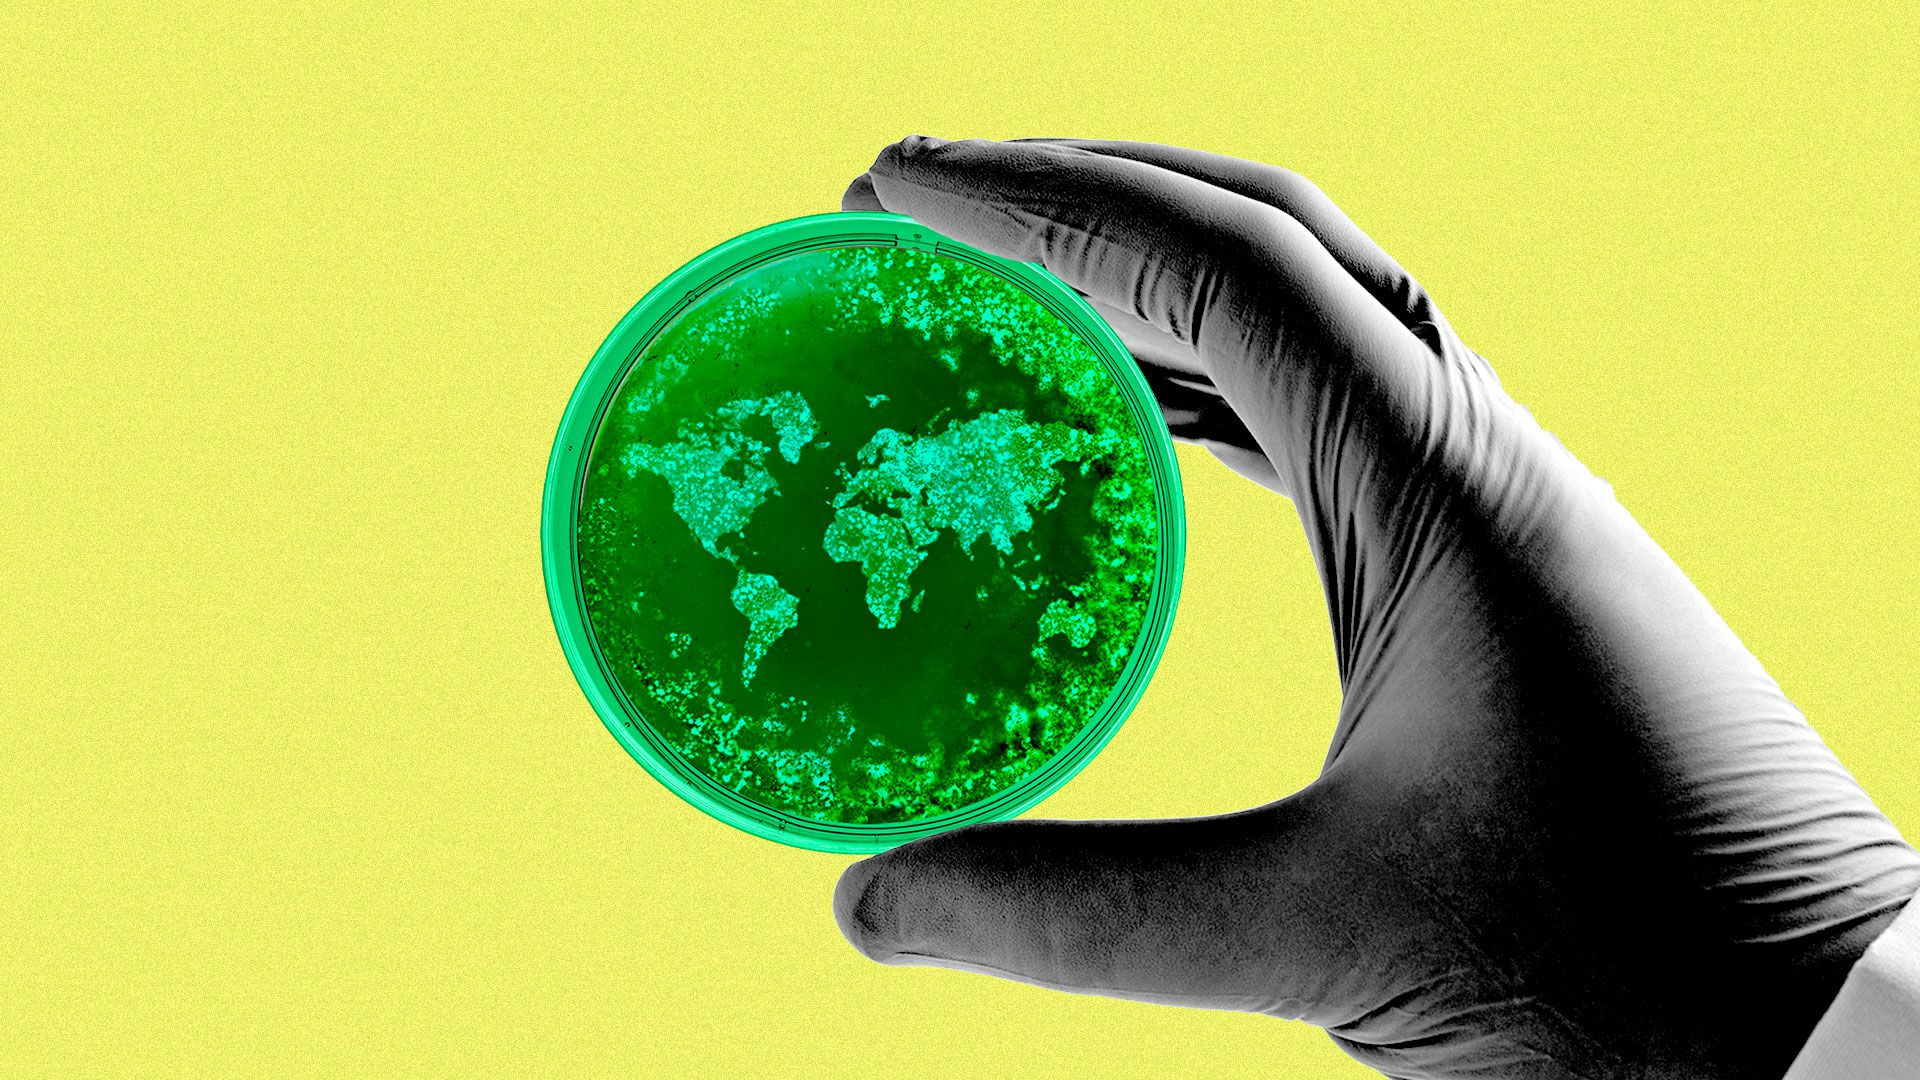 Illustration of a scientist's gloved hand holding a petri dish with the world made out of bacteria